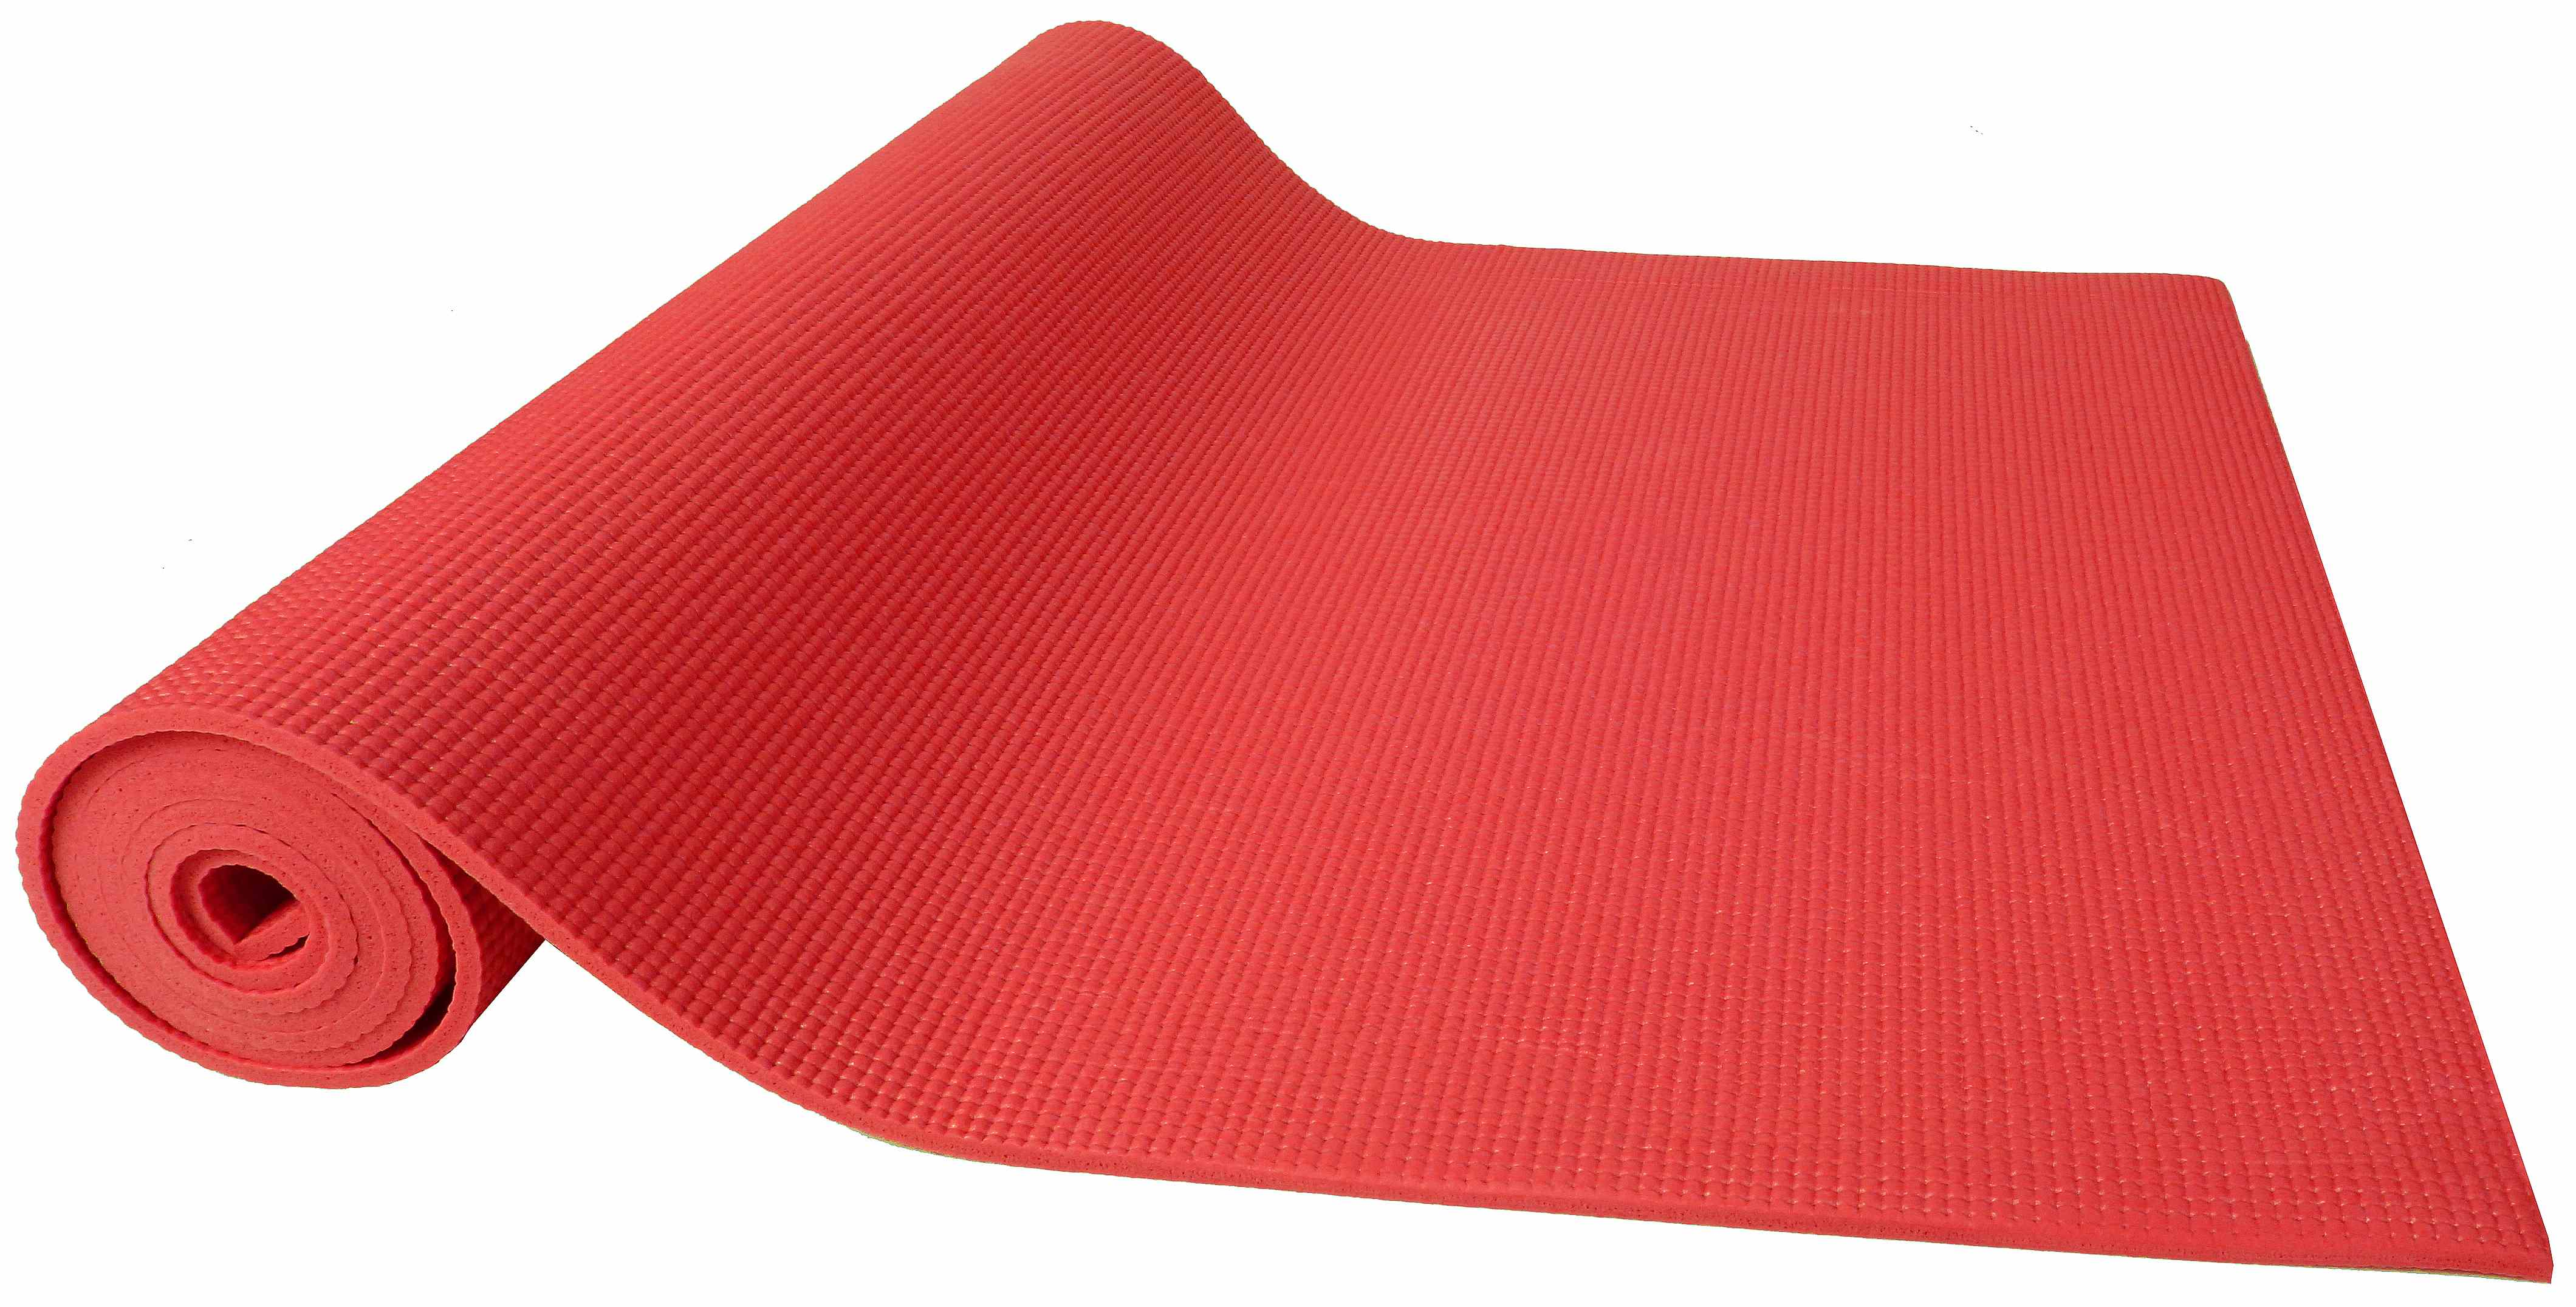 [US Direct] Original BalanceFrom GoYoga All Purpose High Density Non-Slip Exercise Yoga Mat with Carrying Strap, Blue Red